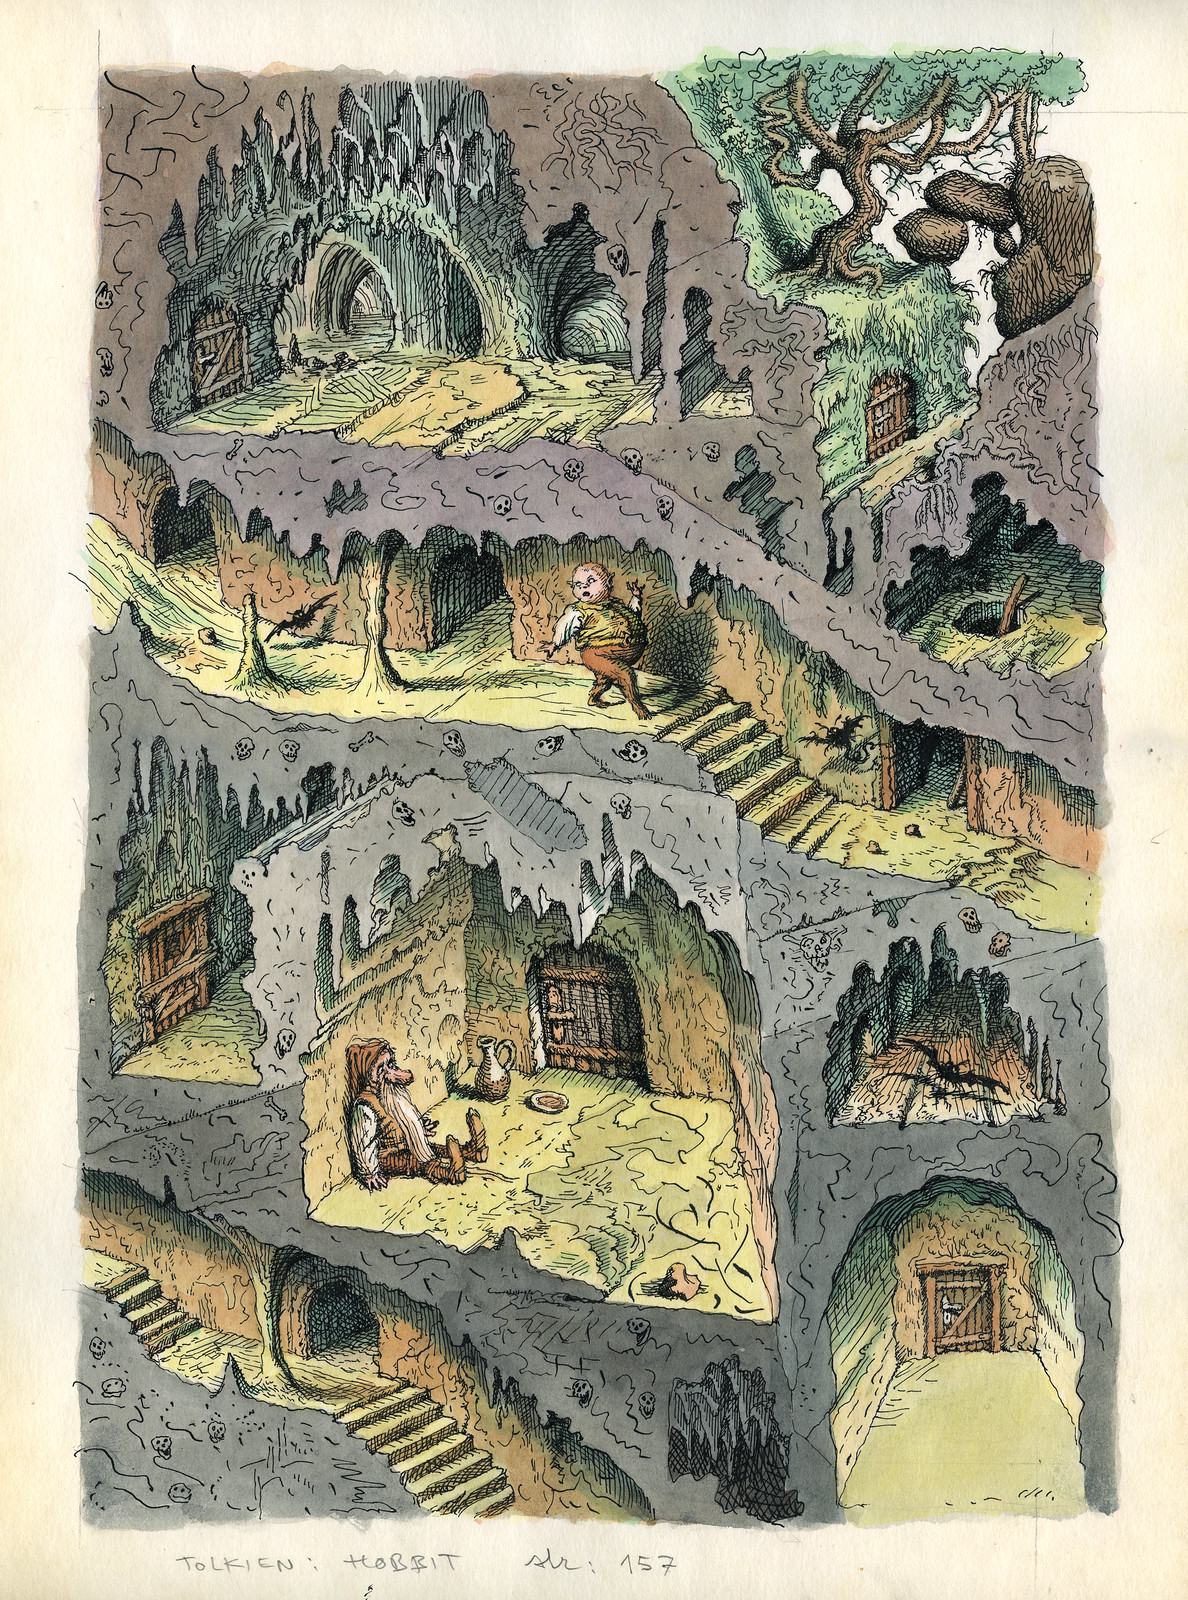 Peter Klucik -The Hobbit, Illustration 15